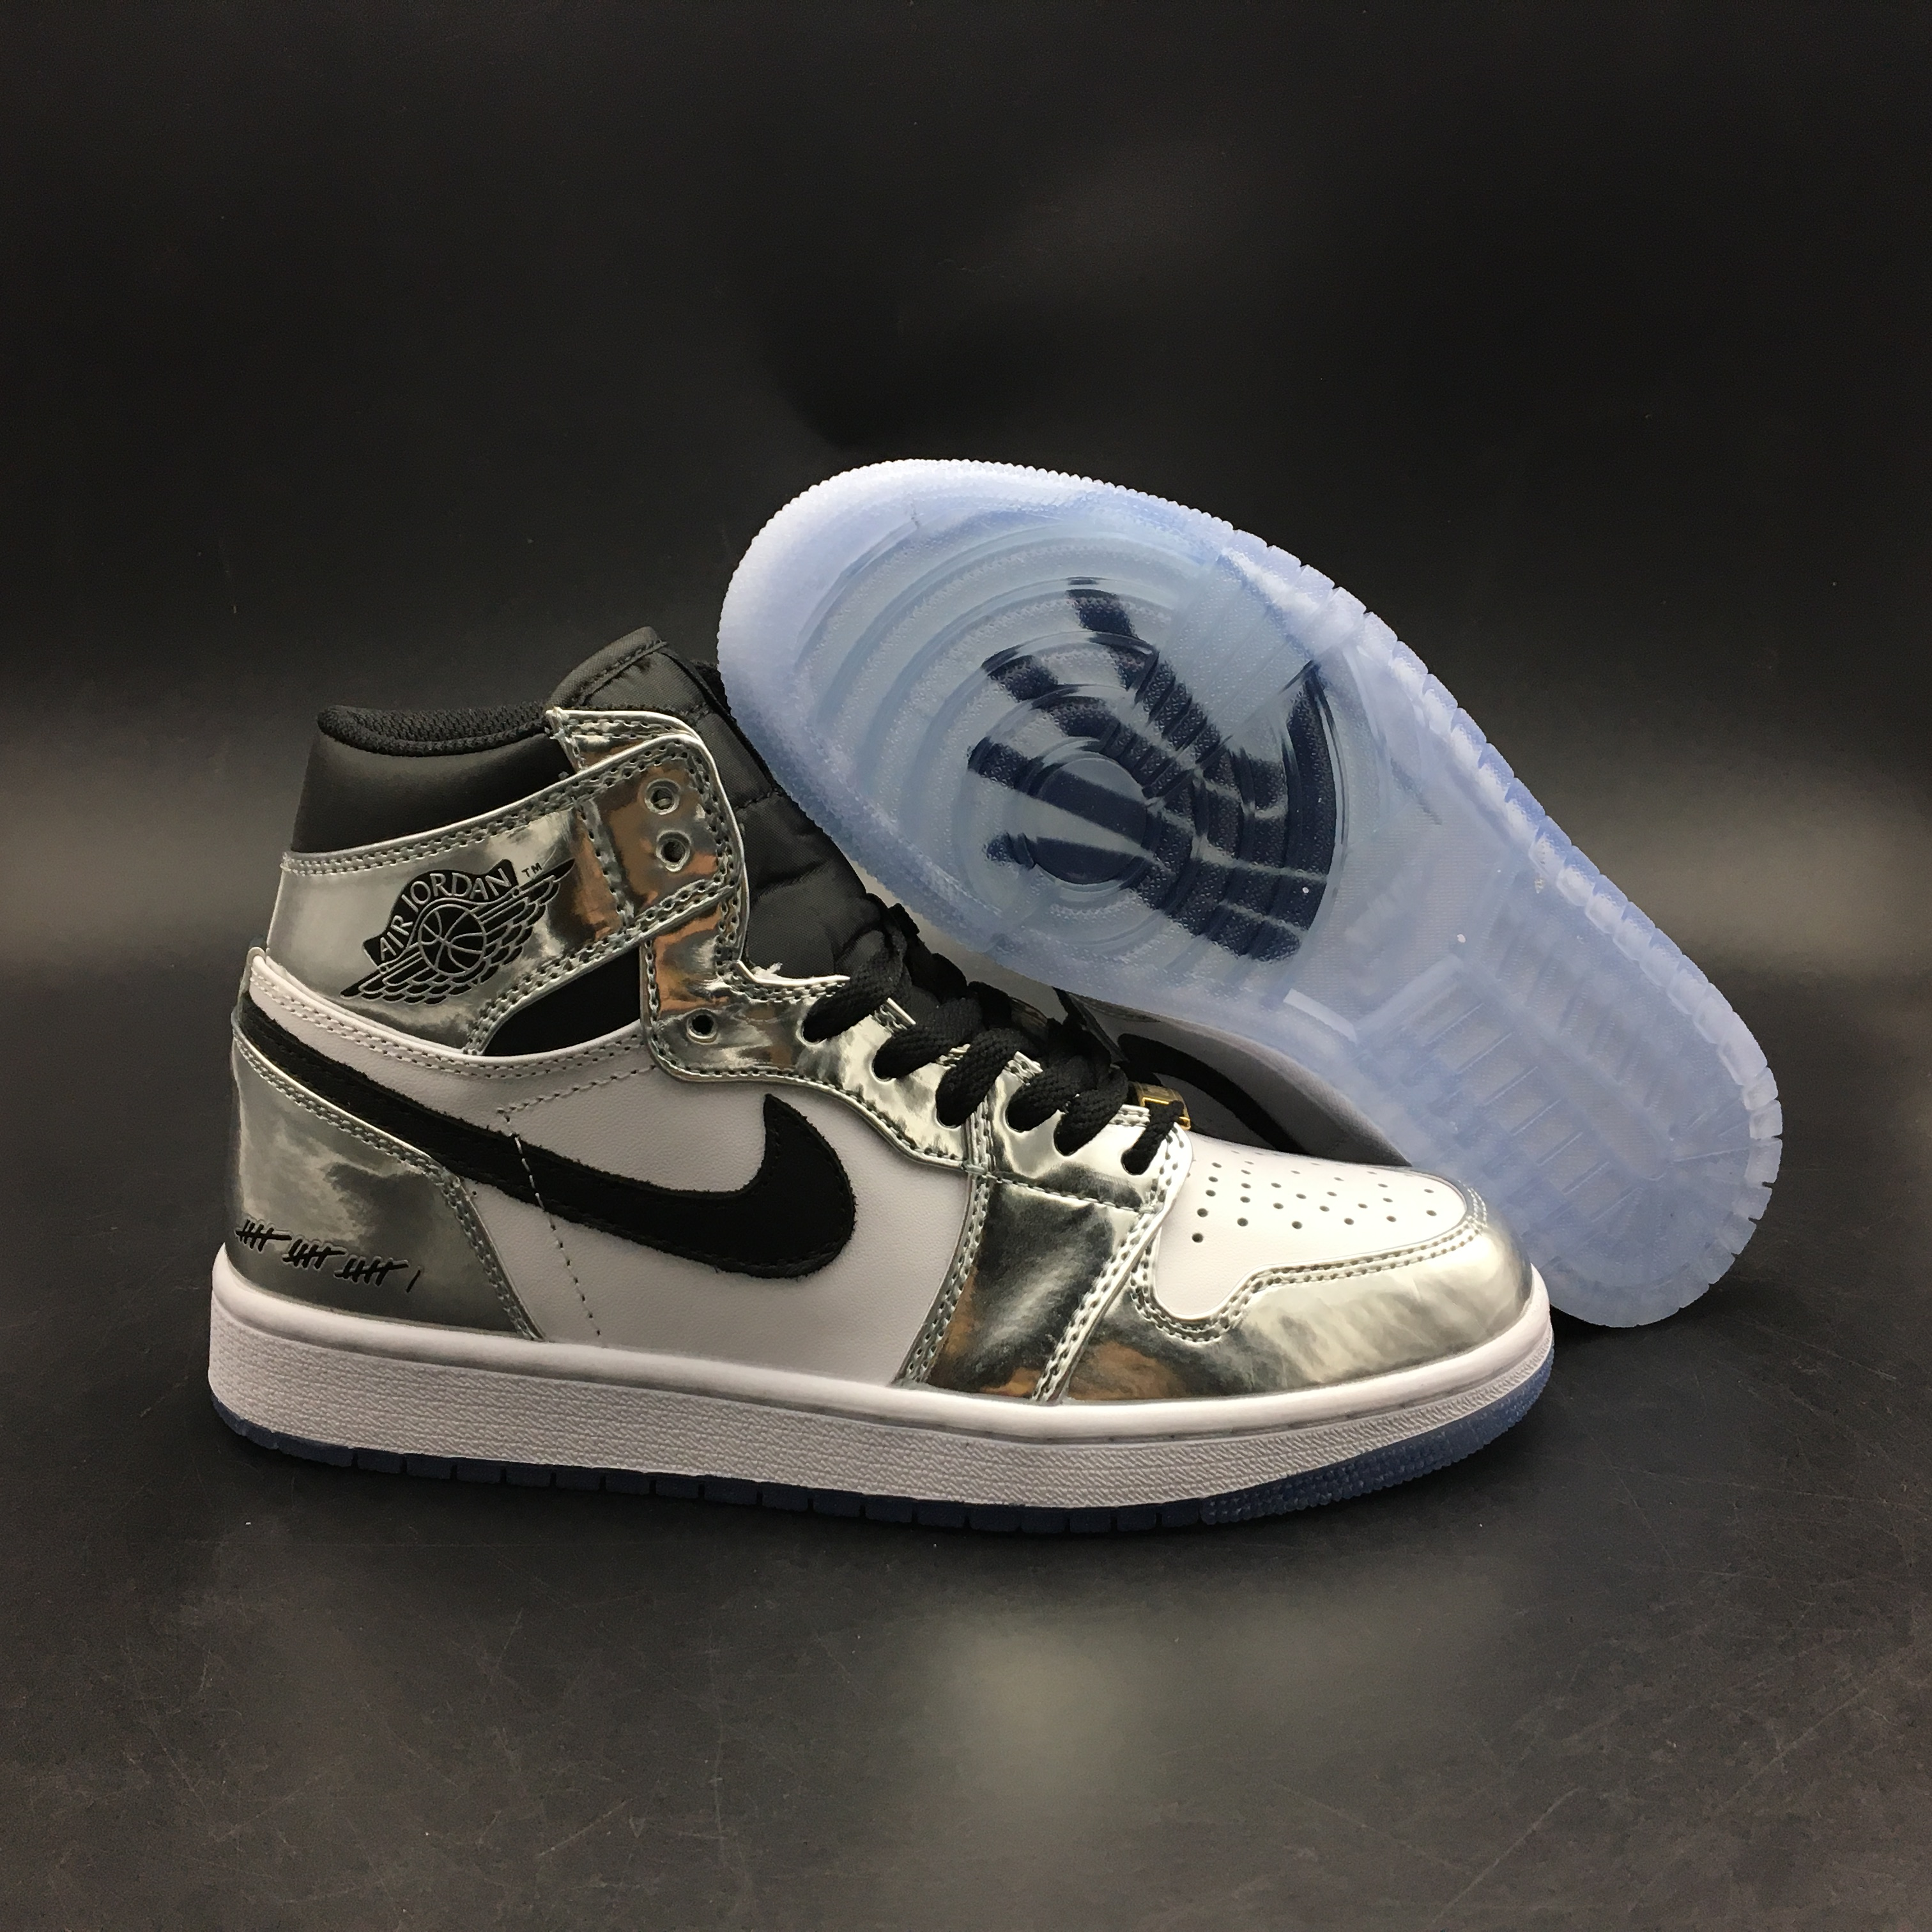 Air Jordan 1 High Pass The Torch 2018 Mens Air Jordans 1s Basketball Shoes  AAAA Grade XY229 , Getfashionsstore.